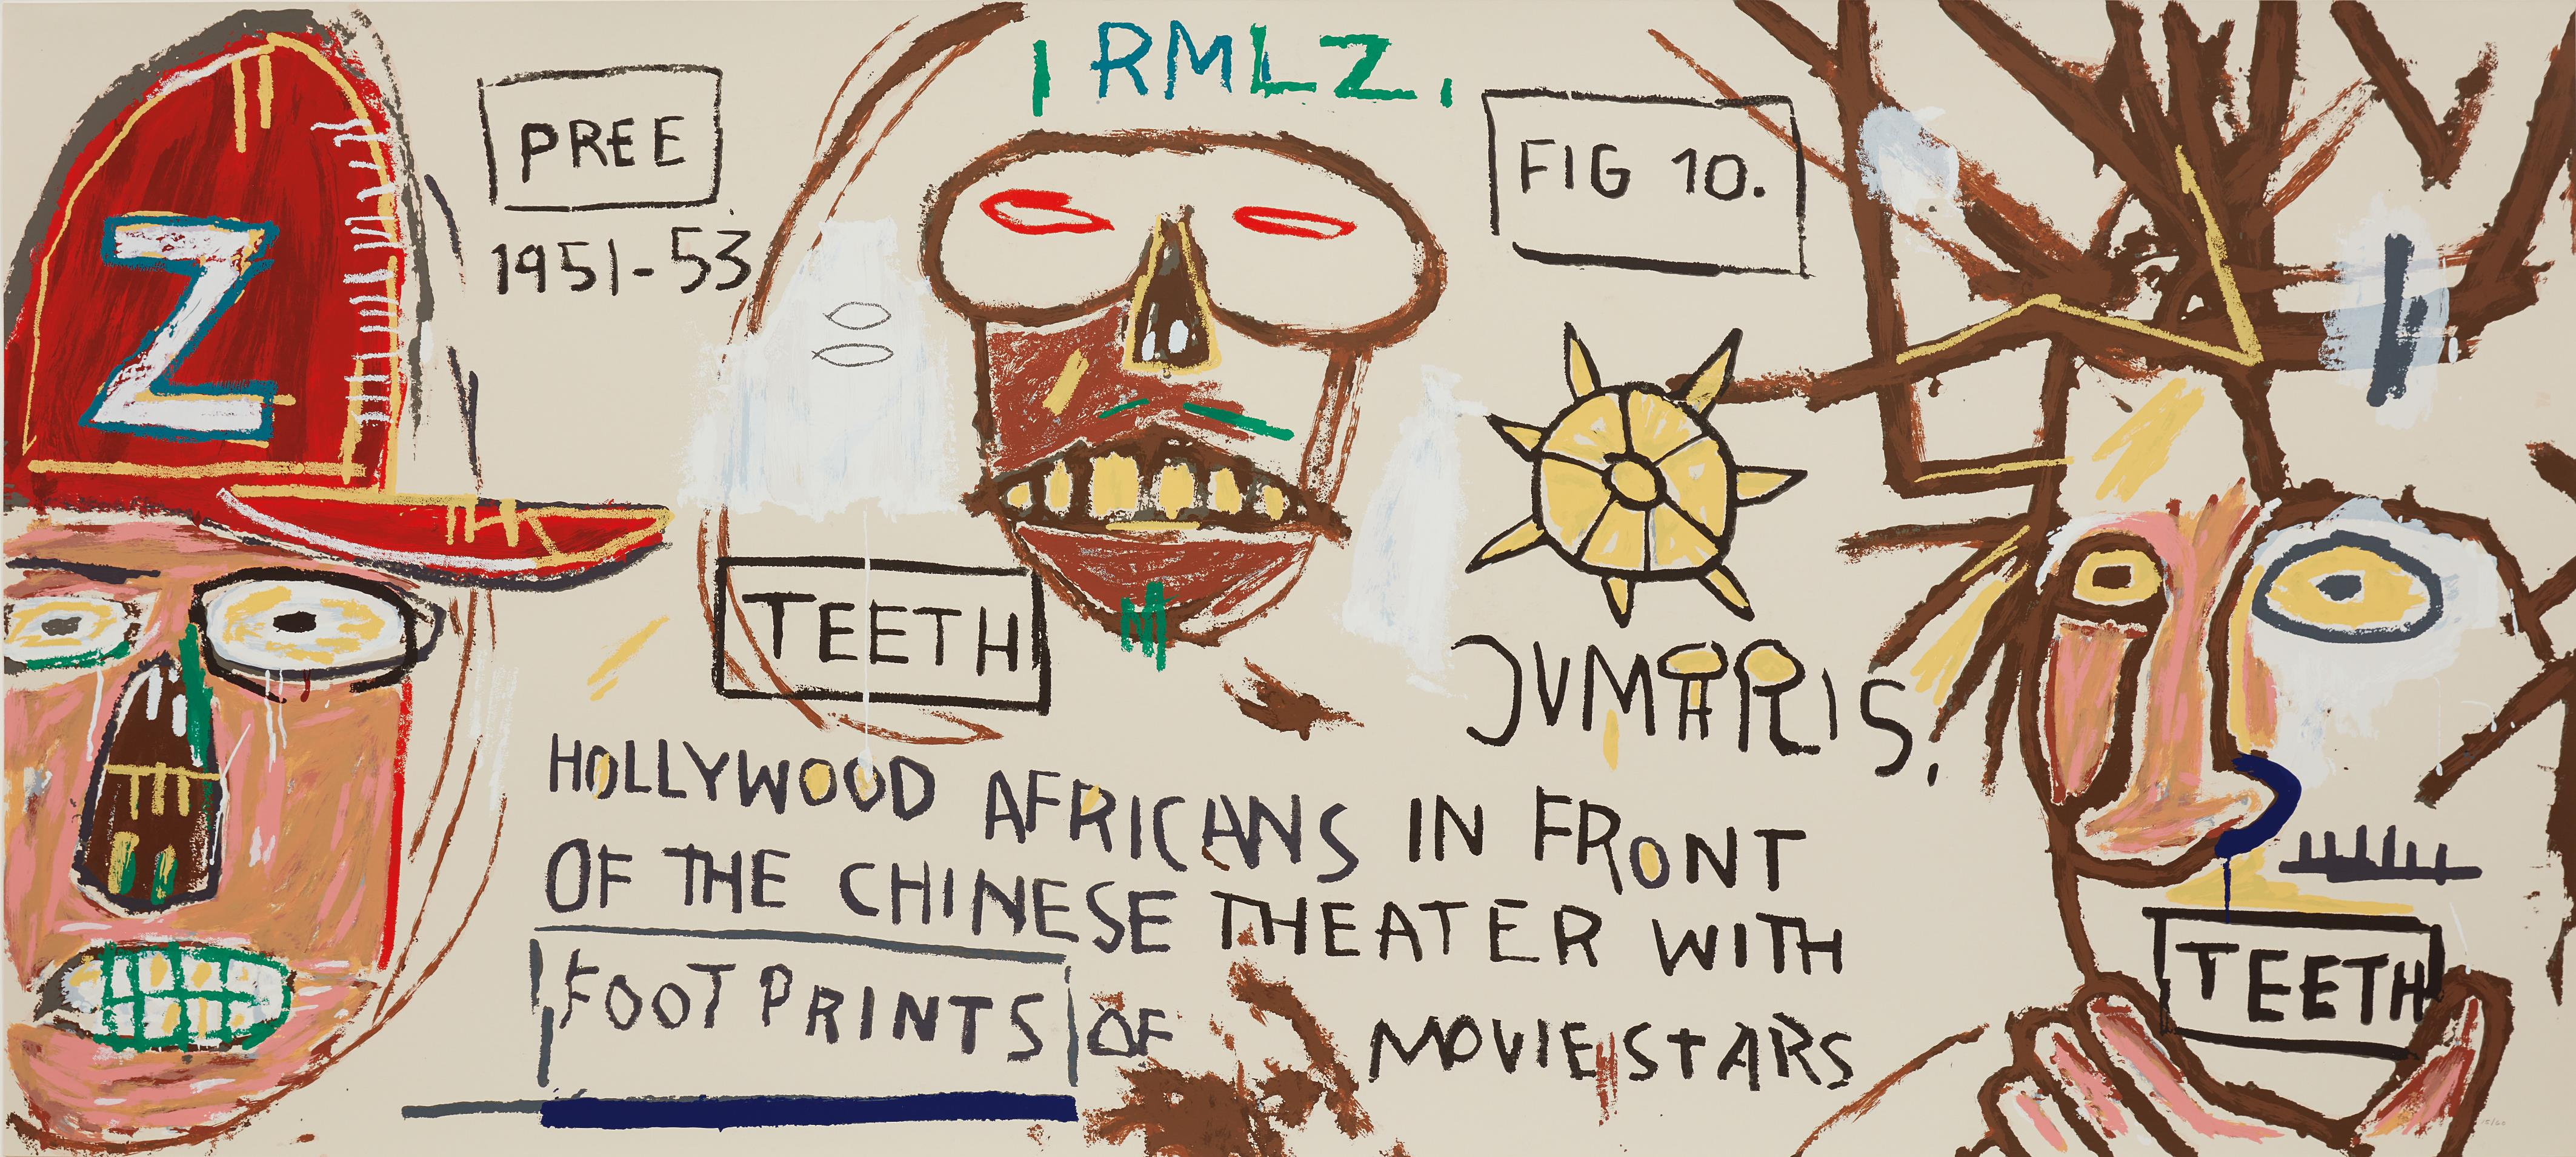 Jean-Michel Basquiat-After Jean-Michel Basquiat - Hollywood Africans In Front Of The Chinese Theater With Footprints Of Movie Stars-2015